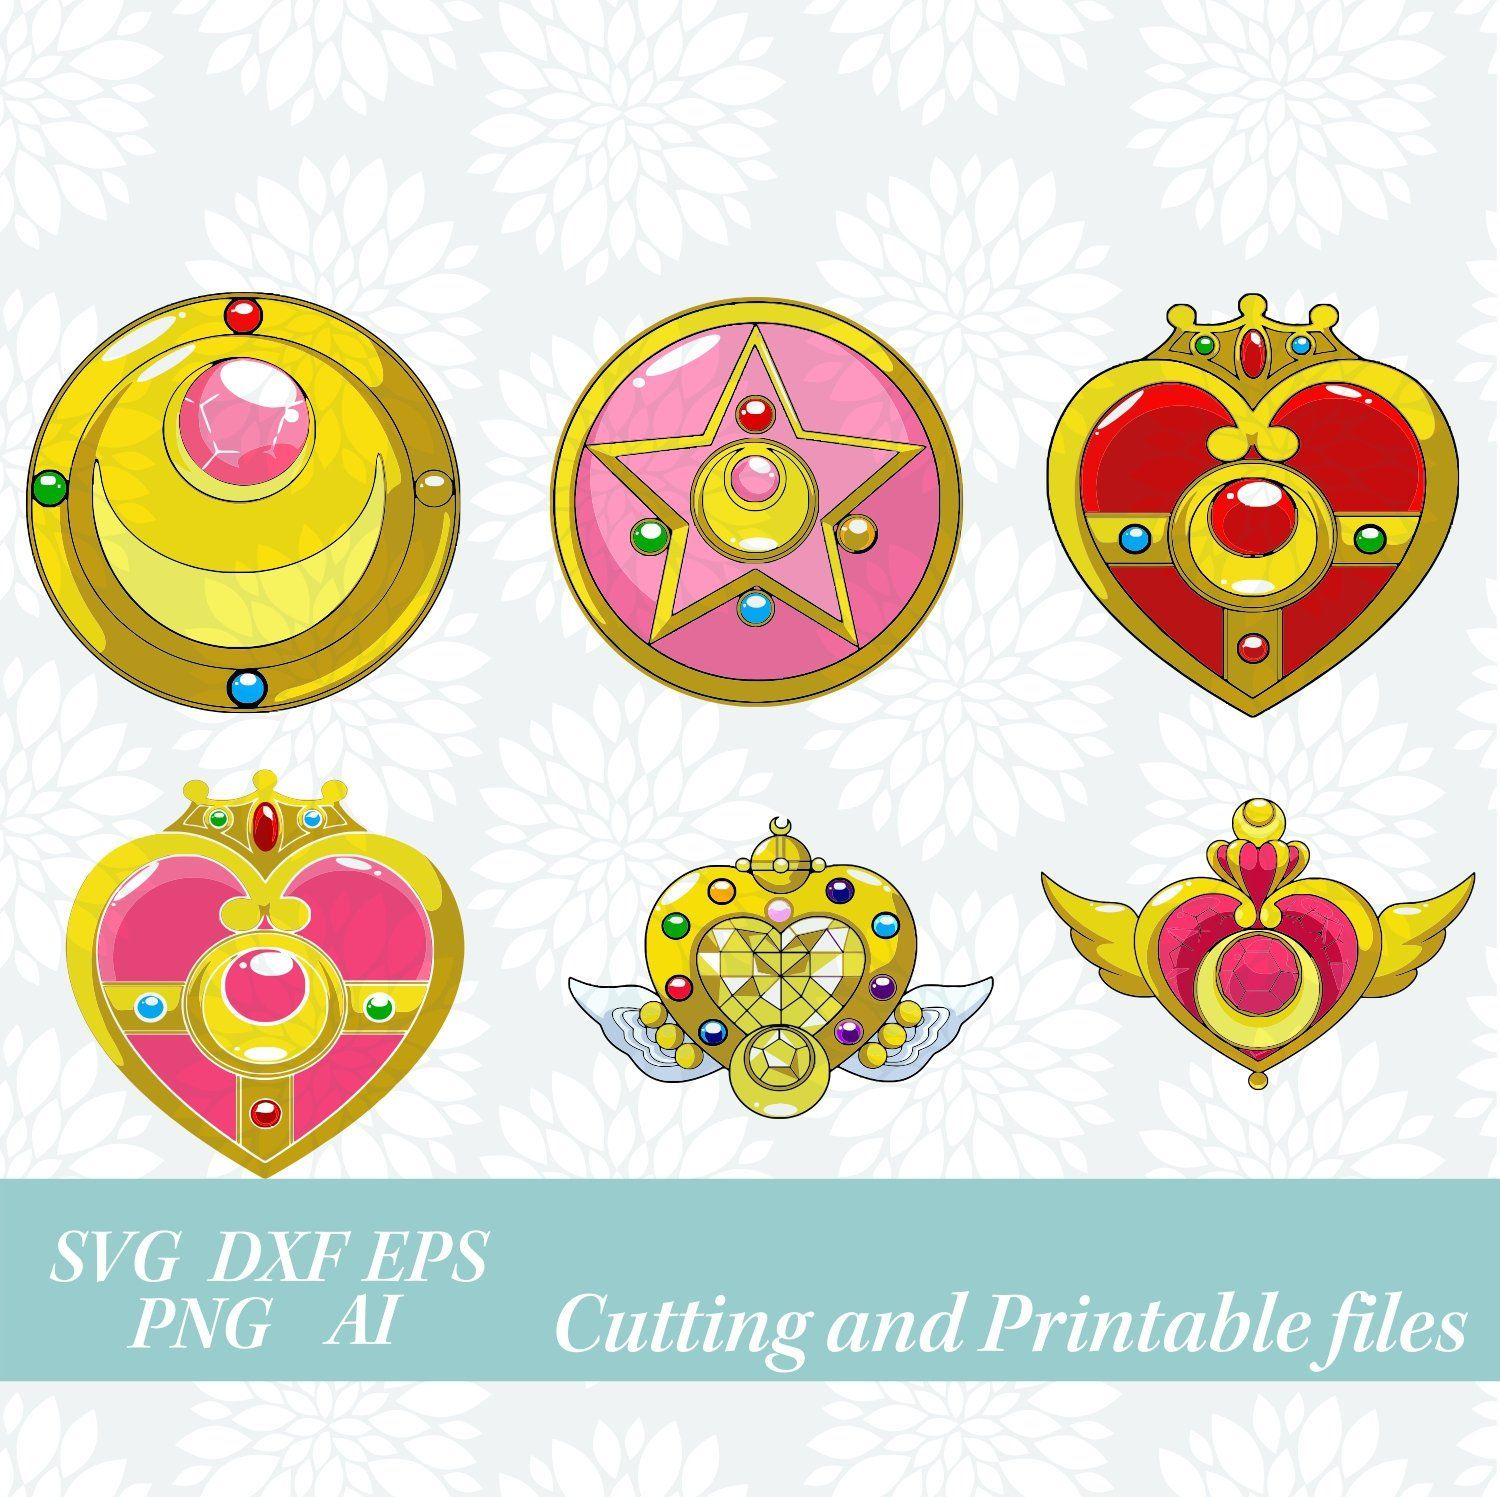 Pin On Digital Download Our sailor moon scanlations are concerned with being faithful to the original; pin on digital download